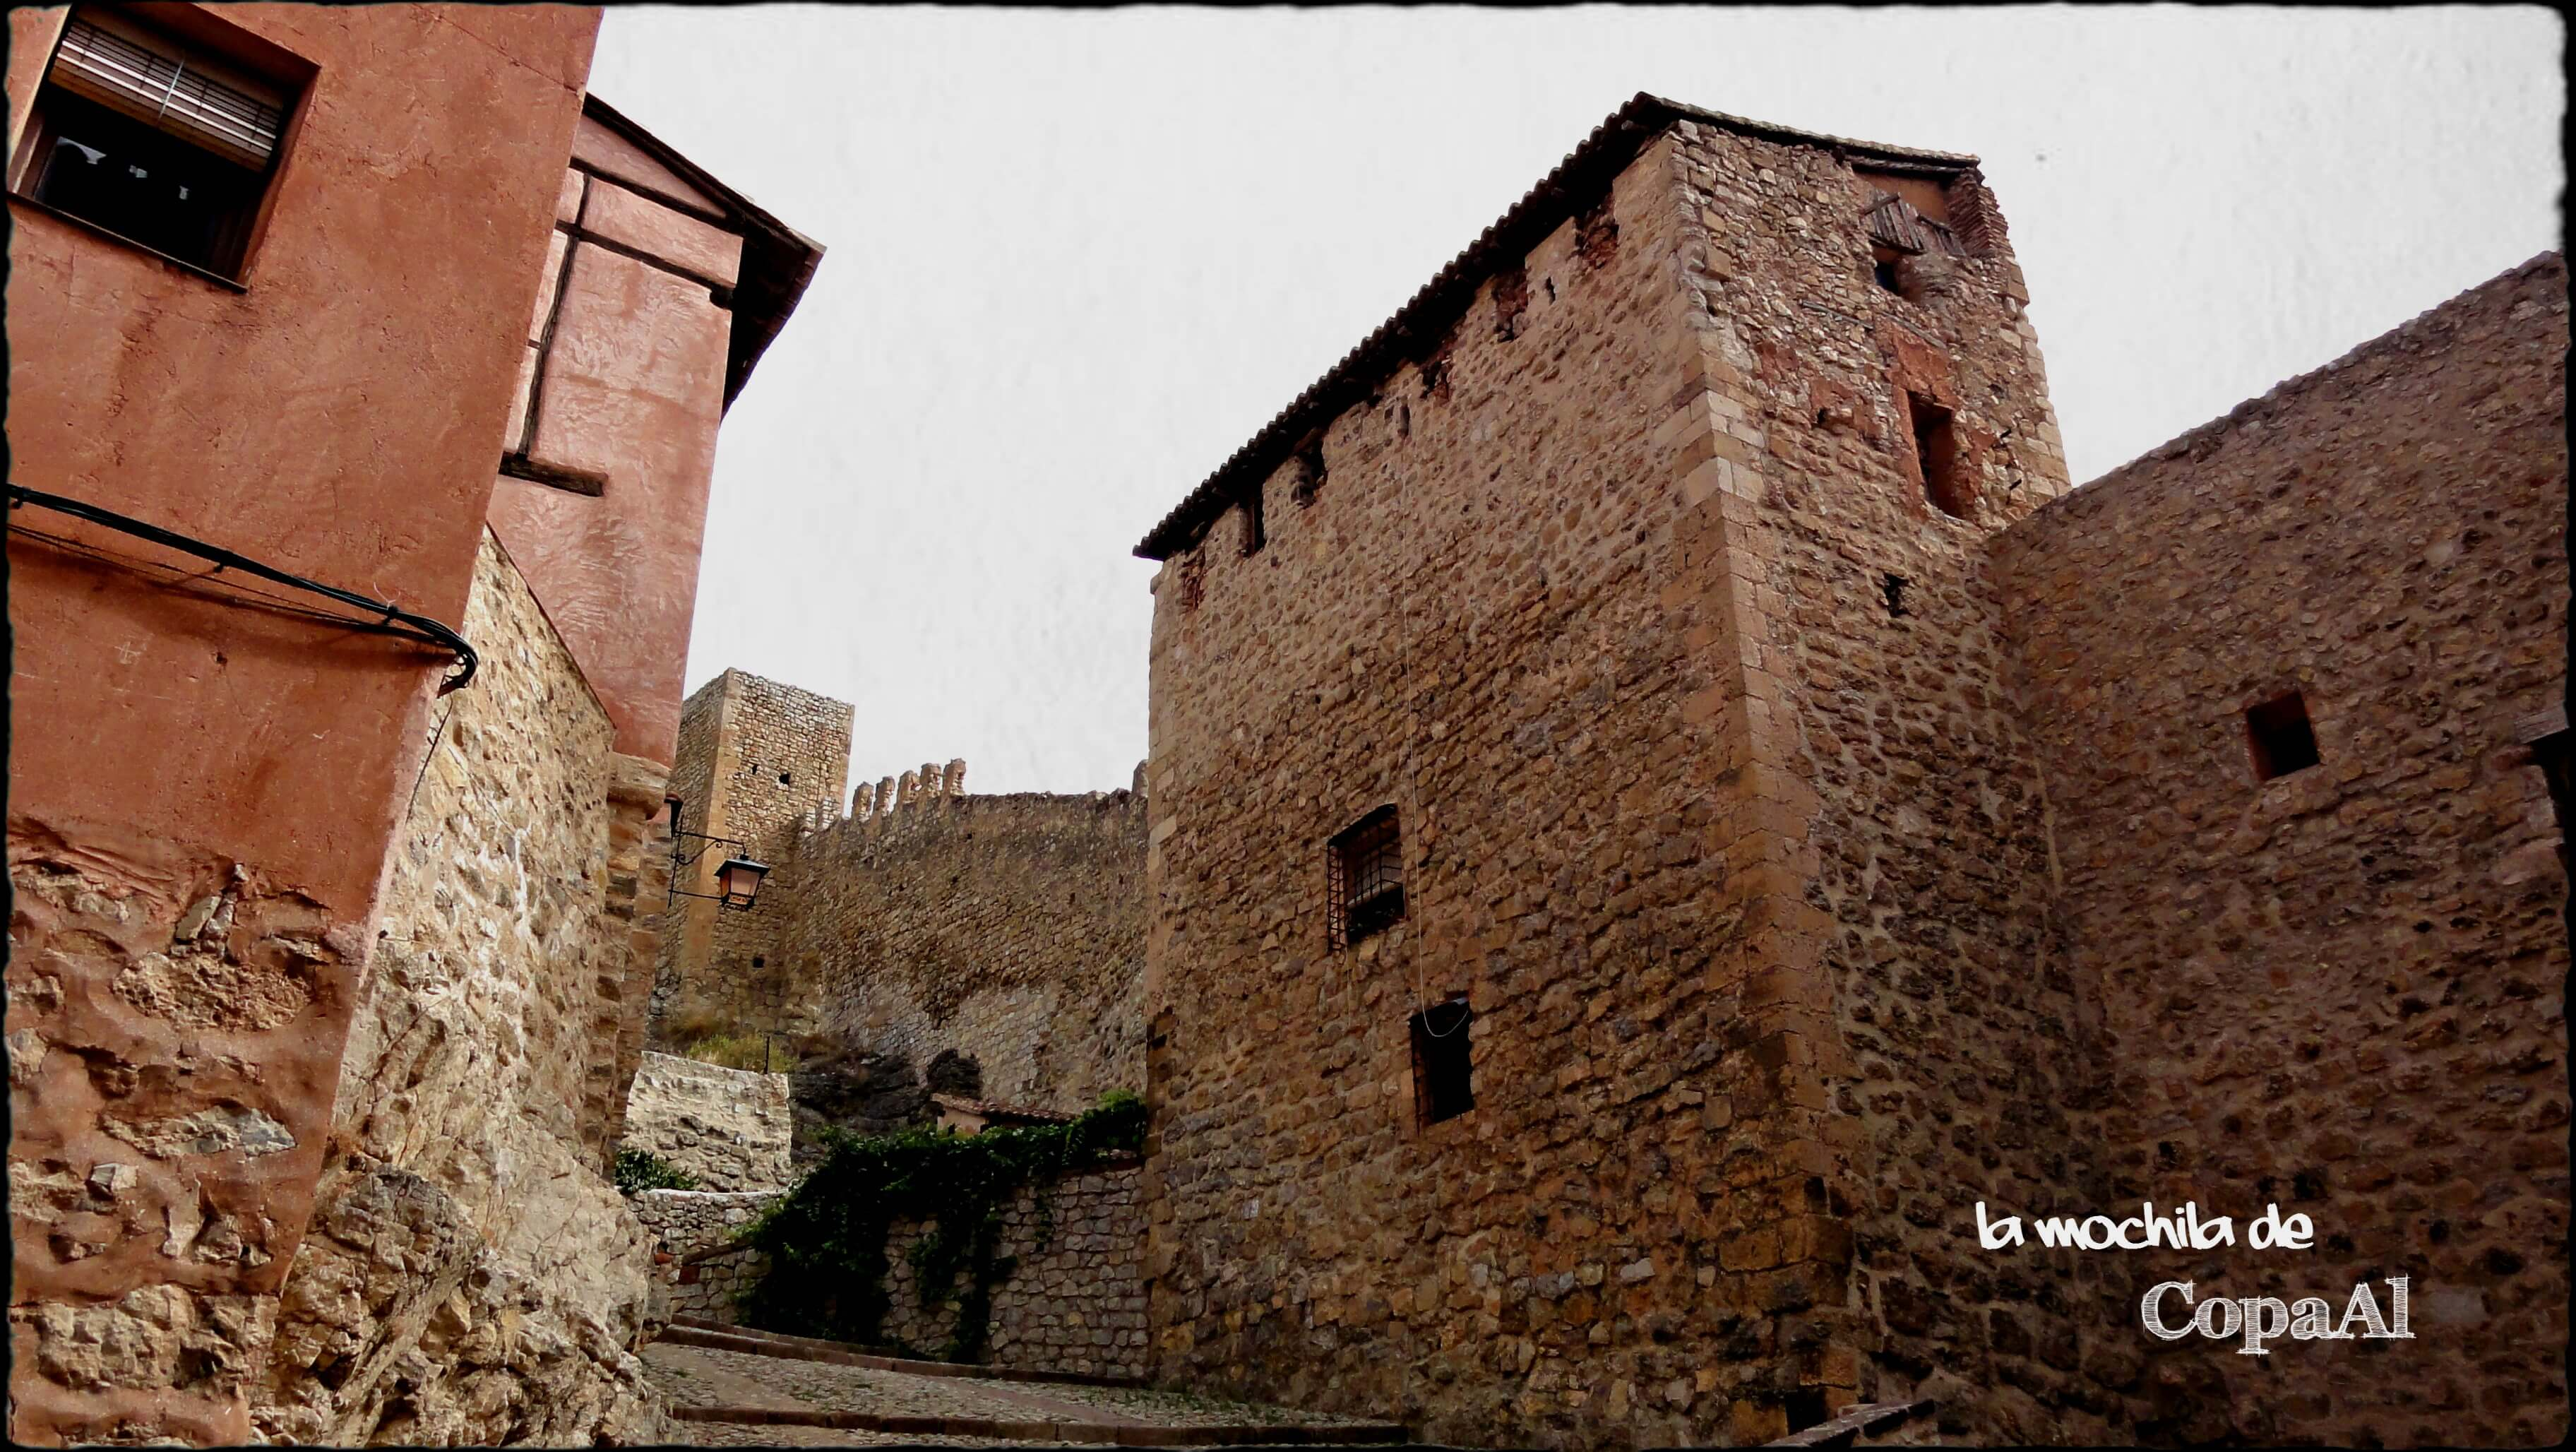 CopaAl-Albarracín-06